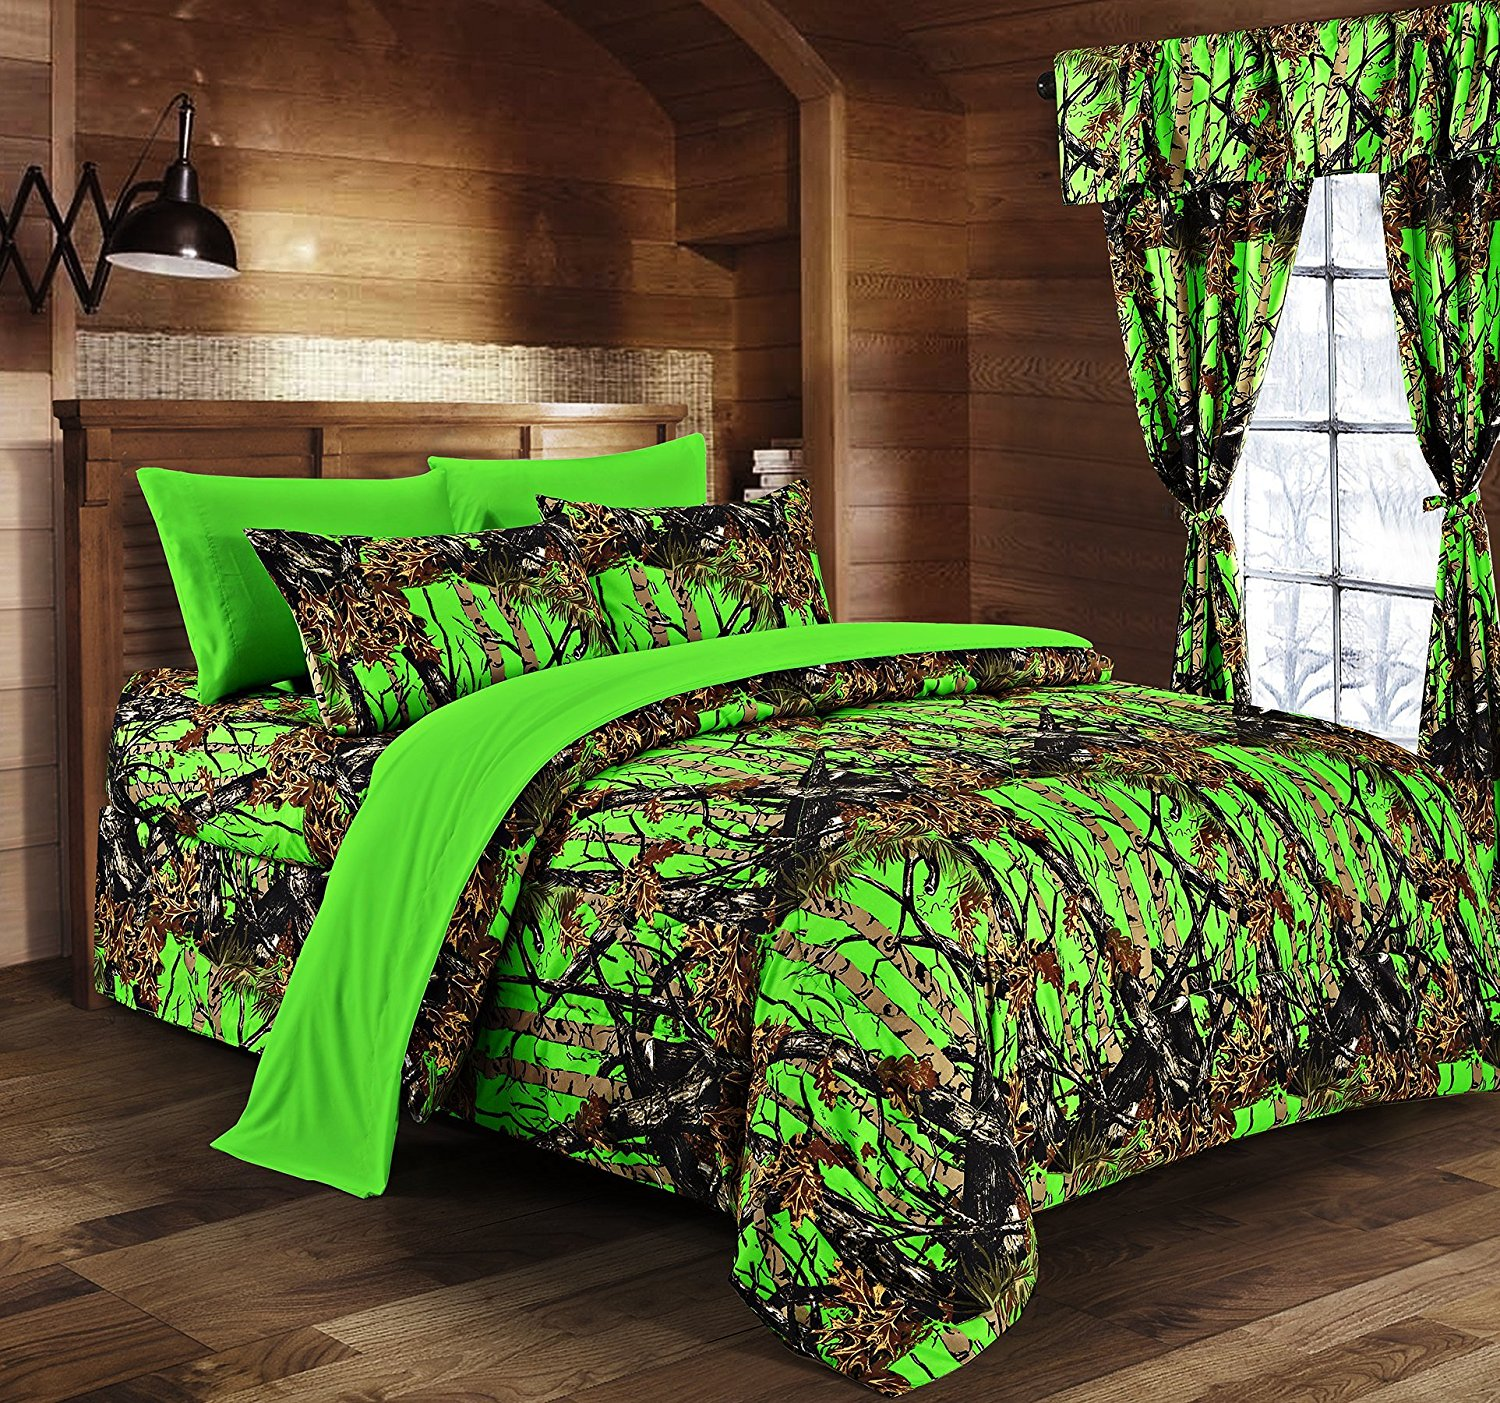 Day Glow Green Camo Bed In A Bag Set The Swamp Company